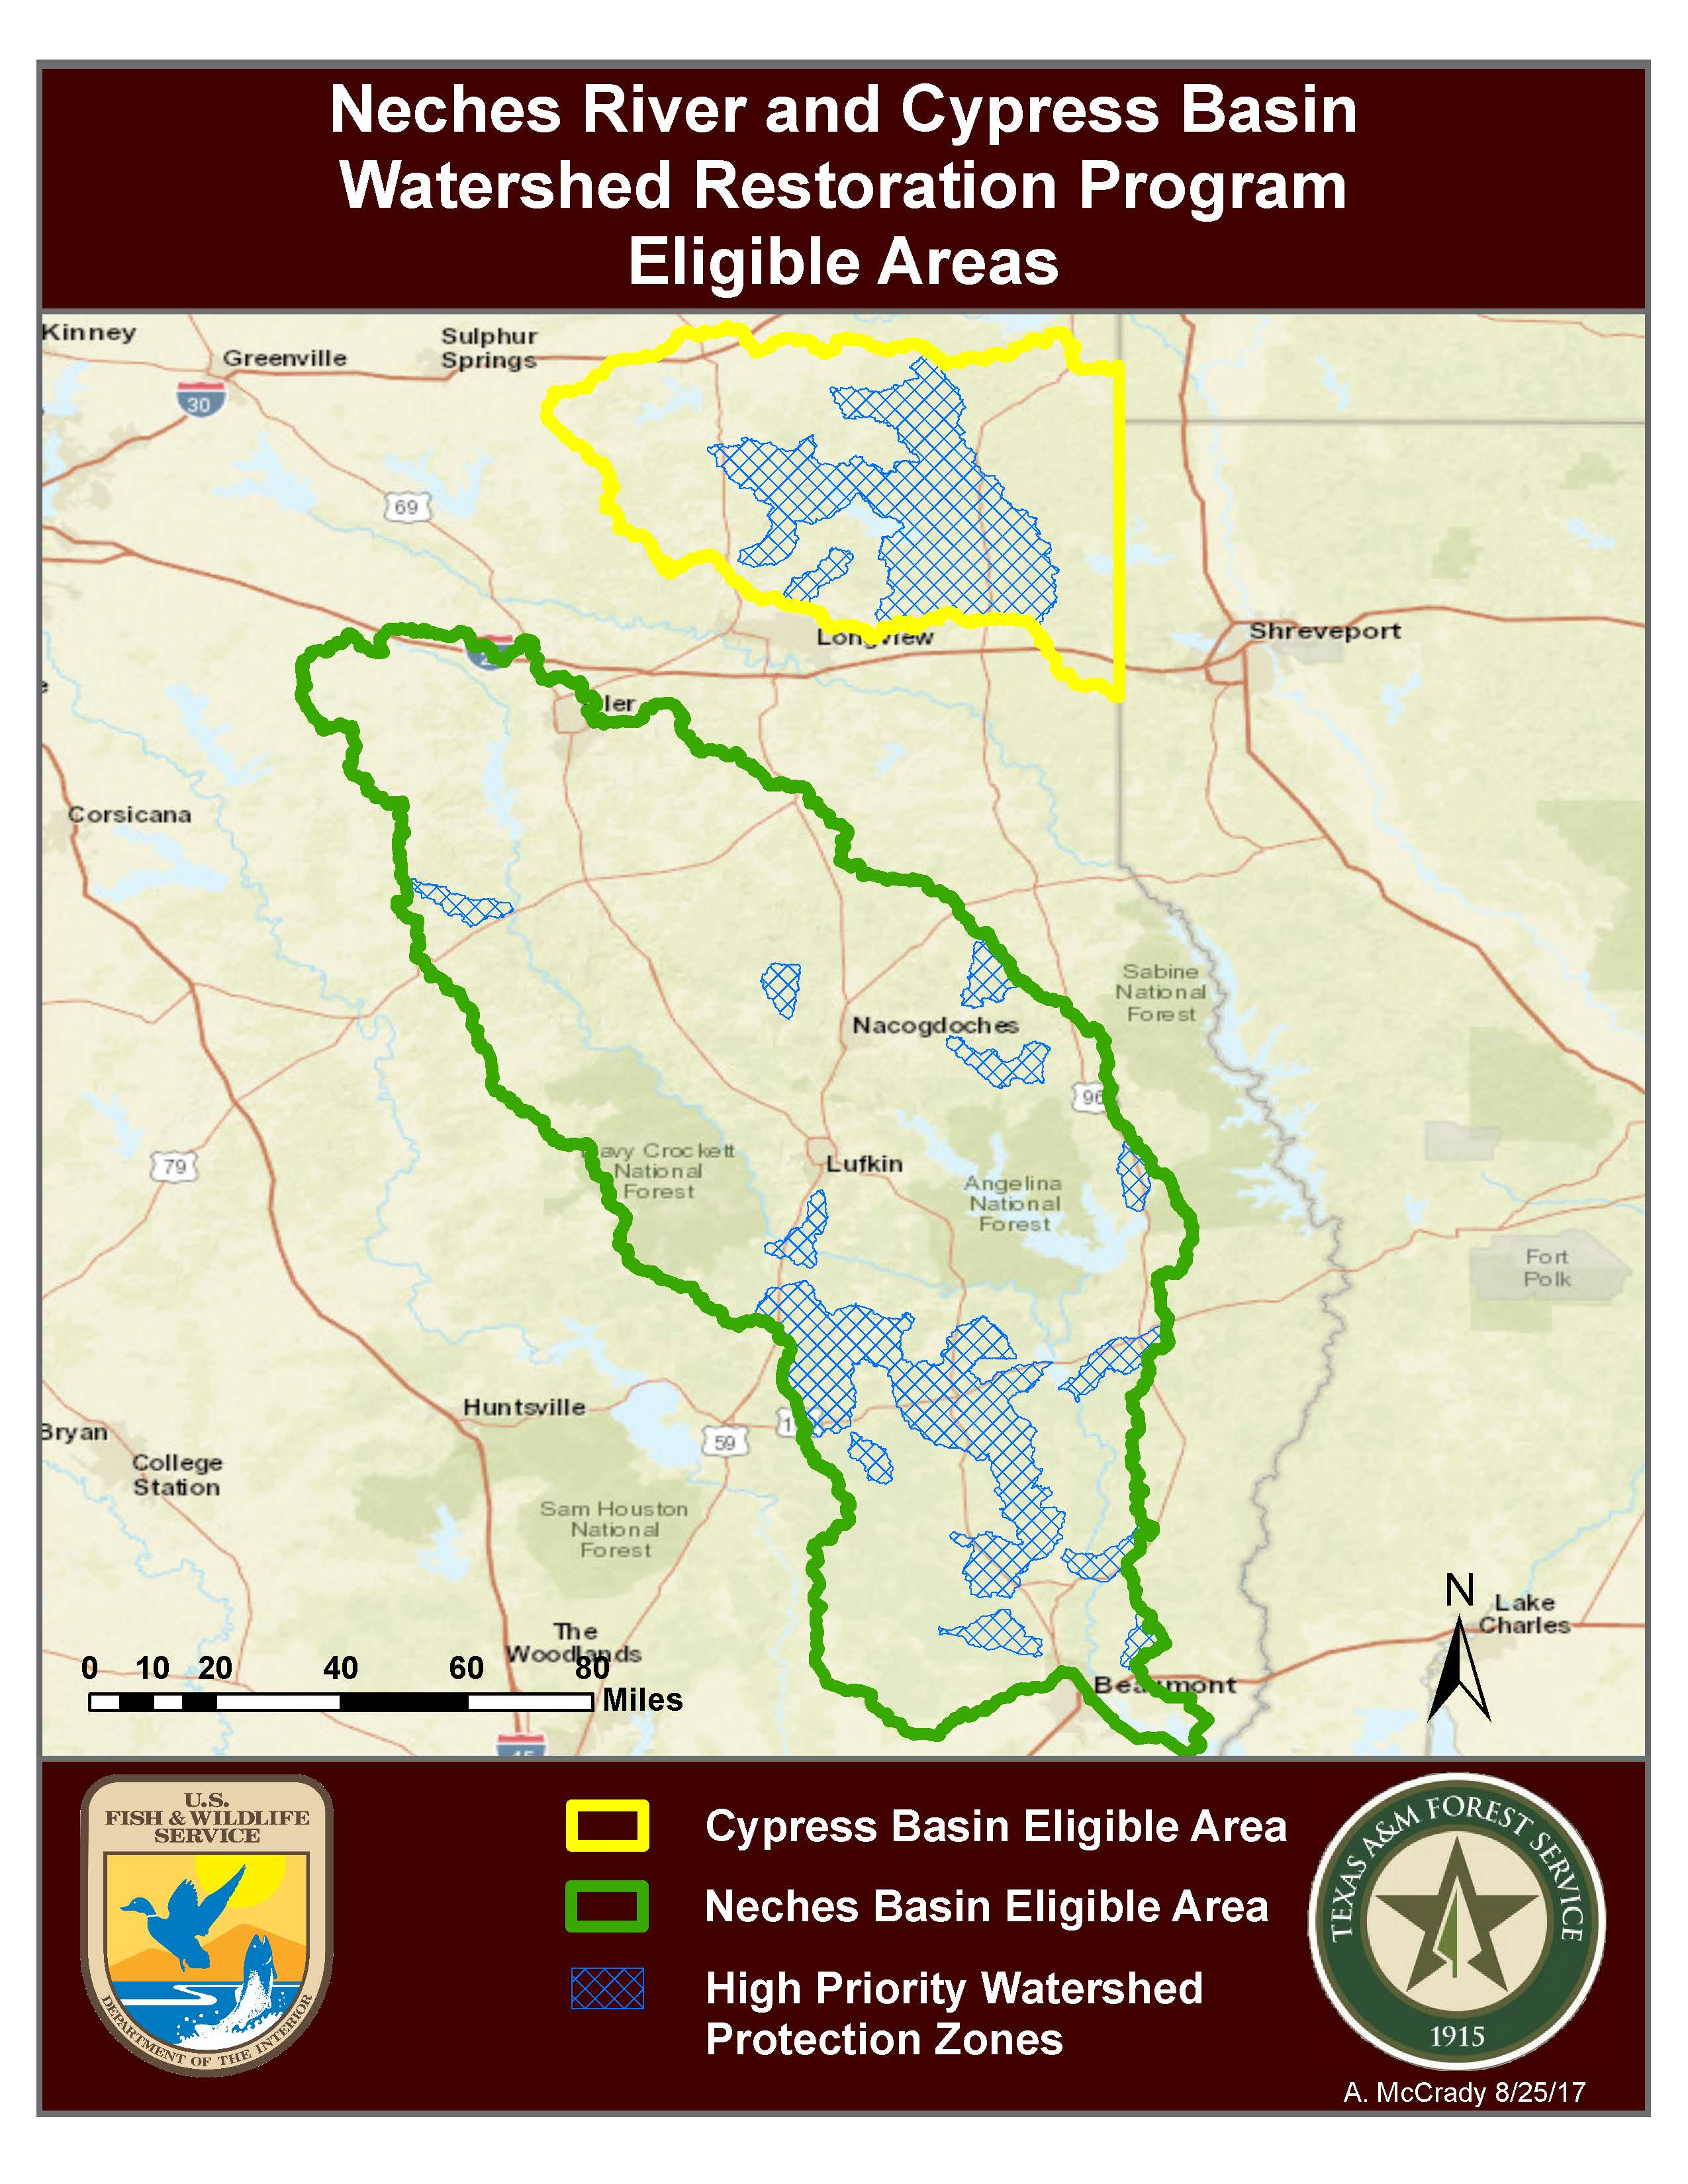 2018 Neches River and Cypress Basin Watershed Restoration Program Eligible Areas